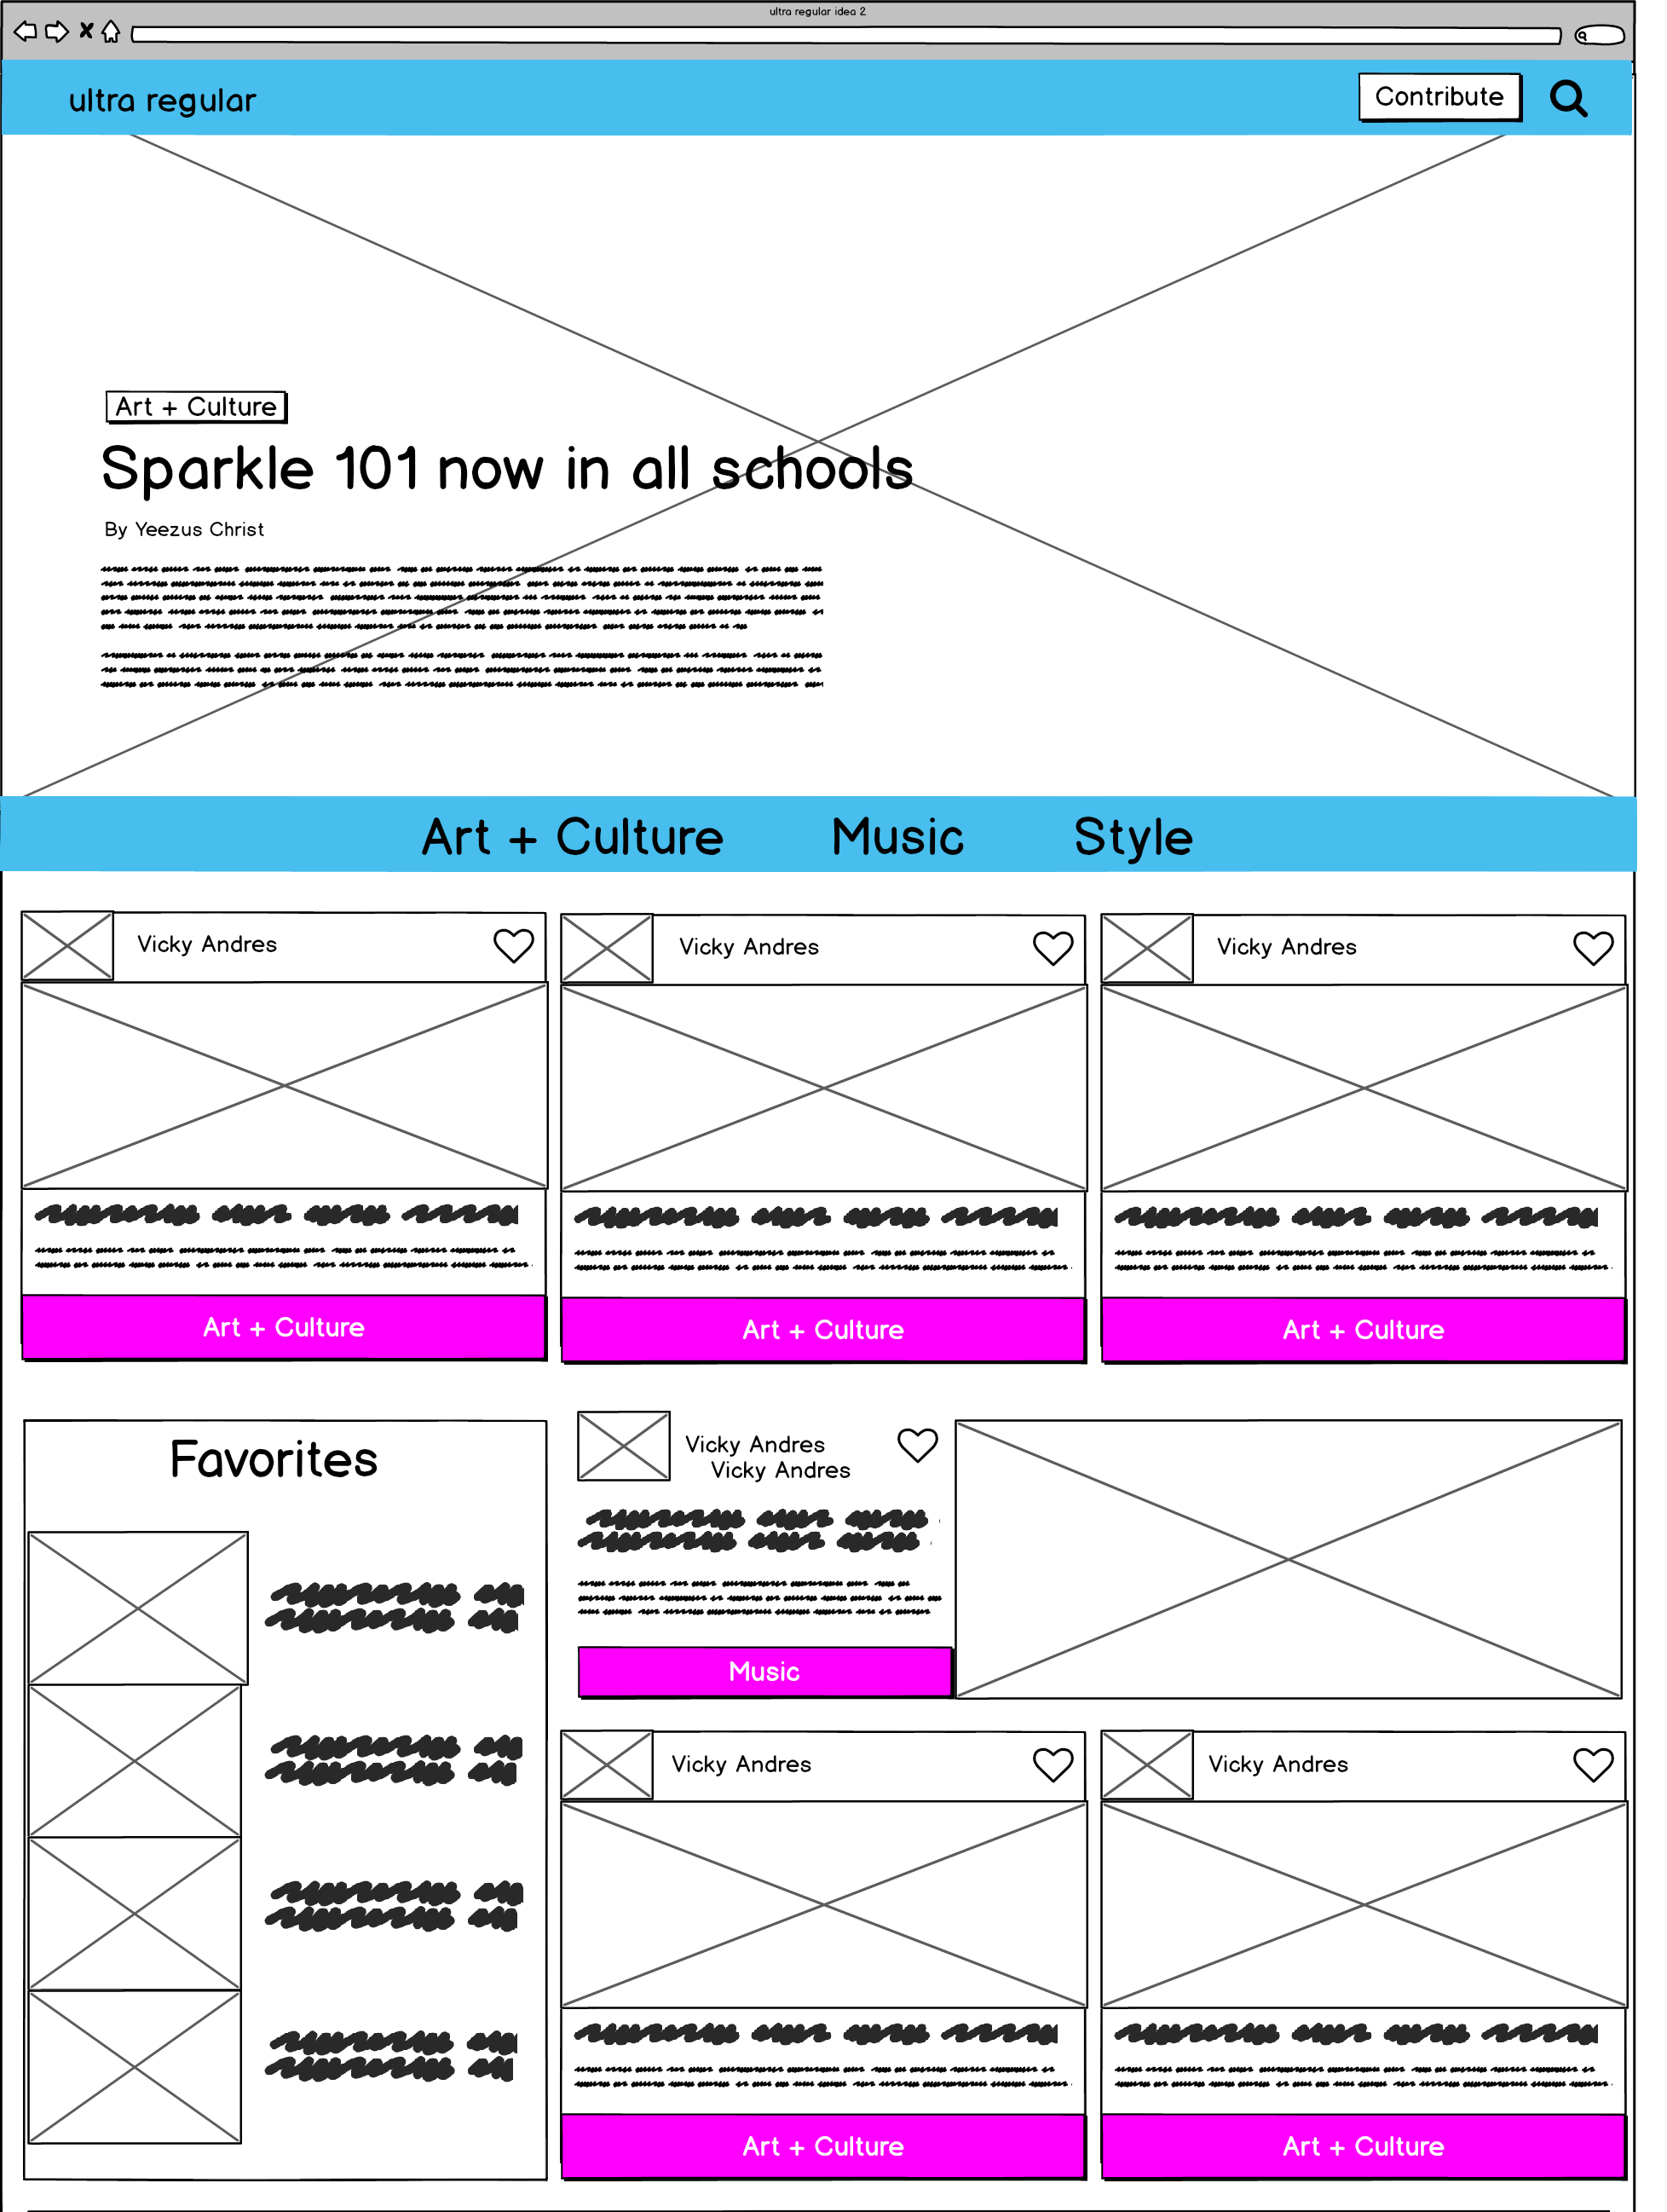 UR+WIREFRAME.png